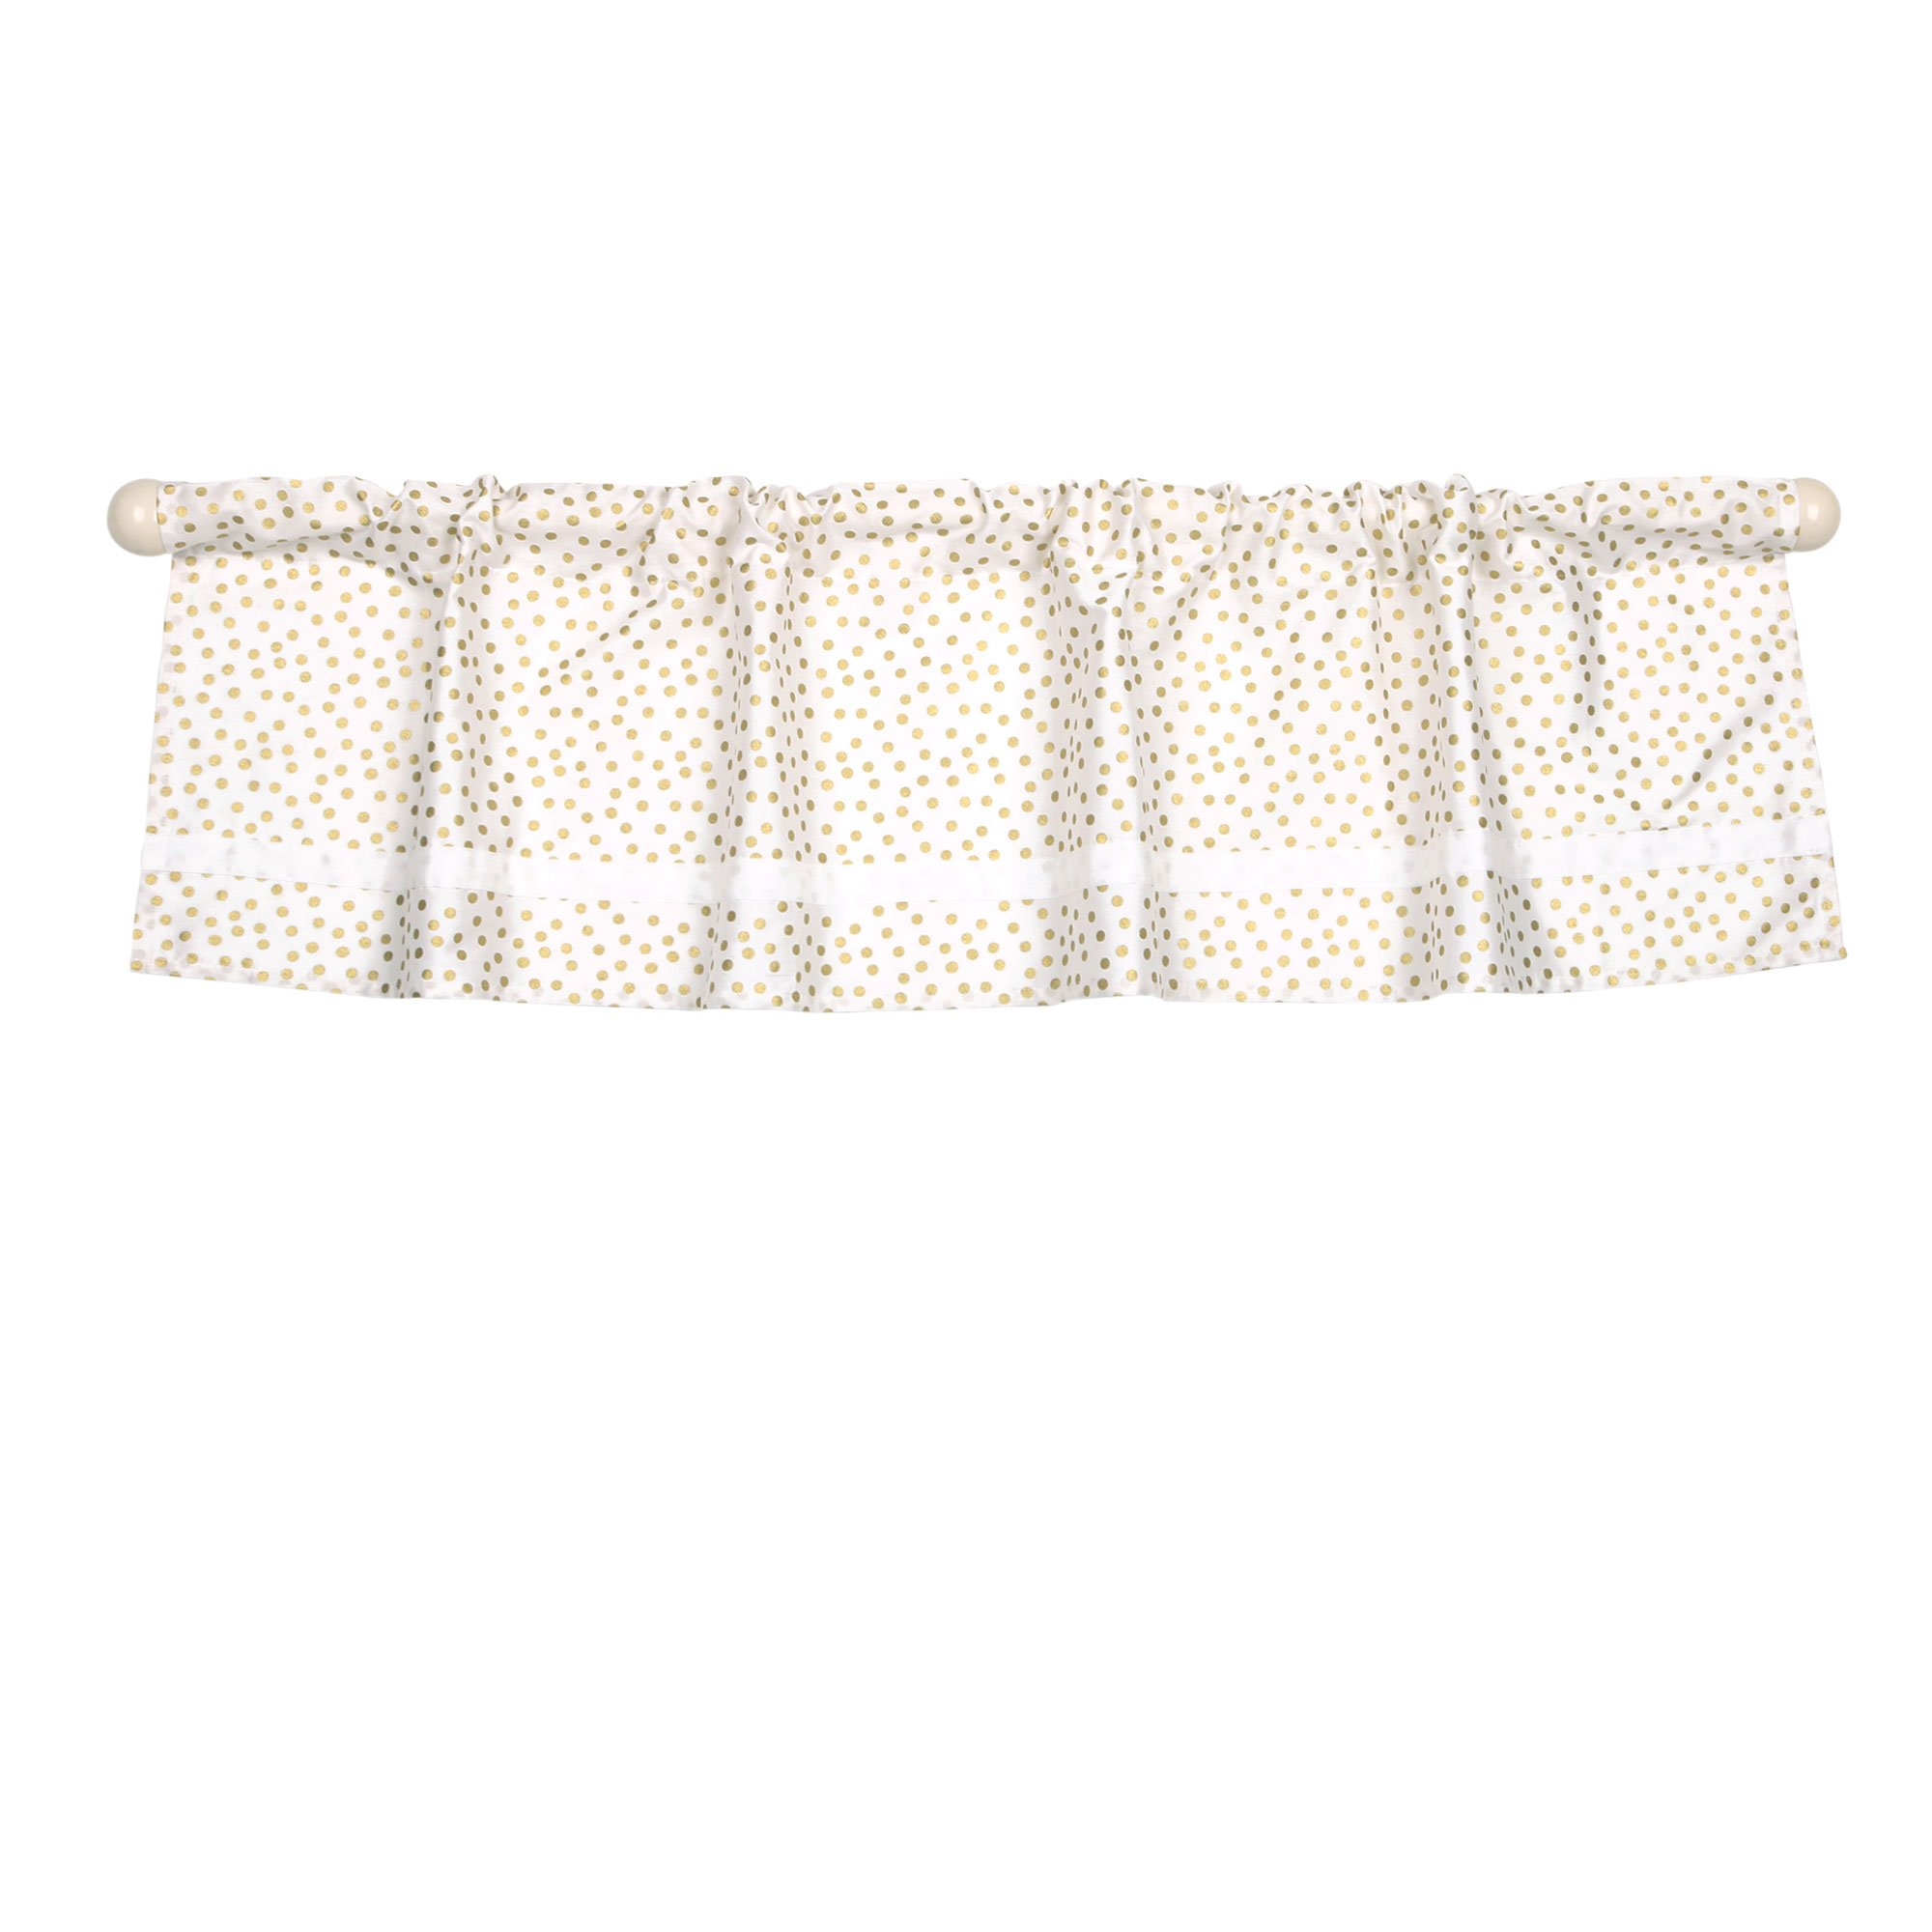 Gold Confetti Dot Print Window Valance by The Peanut Shell - 100% Cotton Sateen